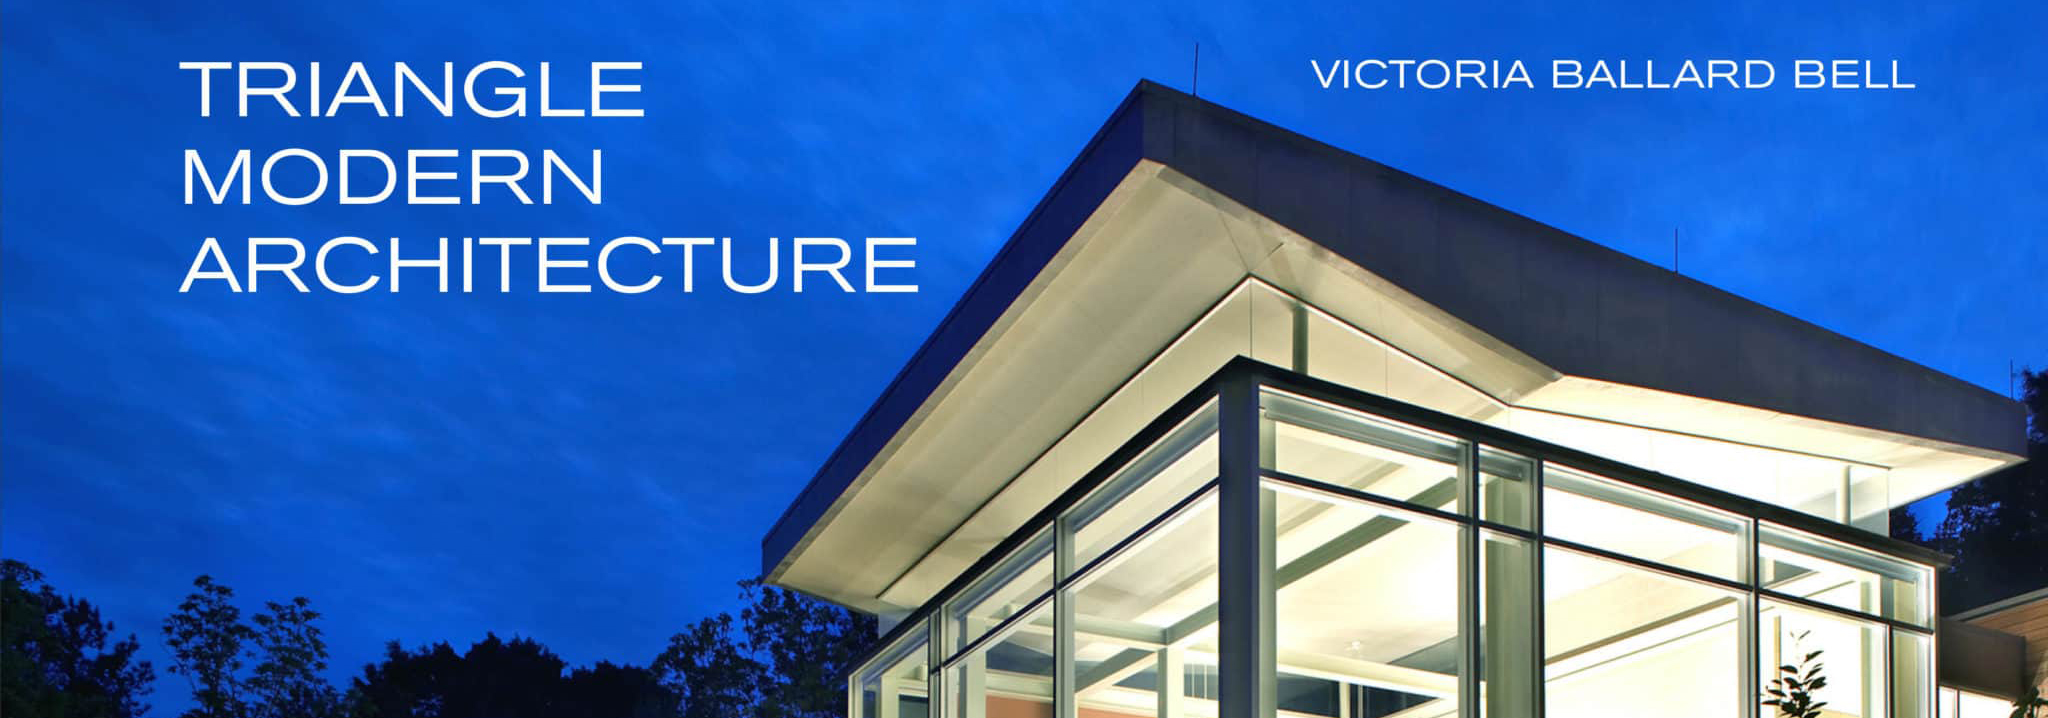 Triangle Modern Architecture Features College of Design's Influence on Local Architecture